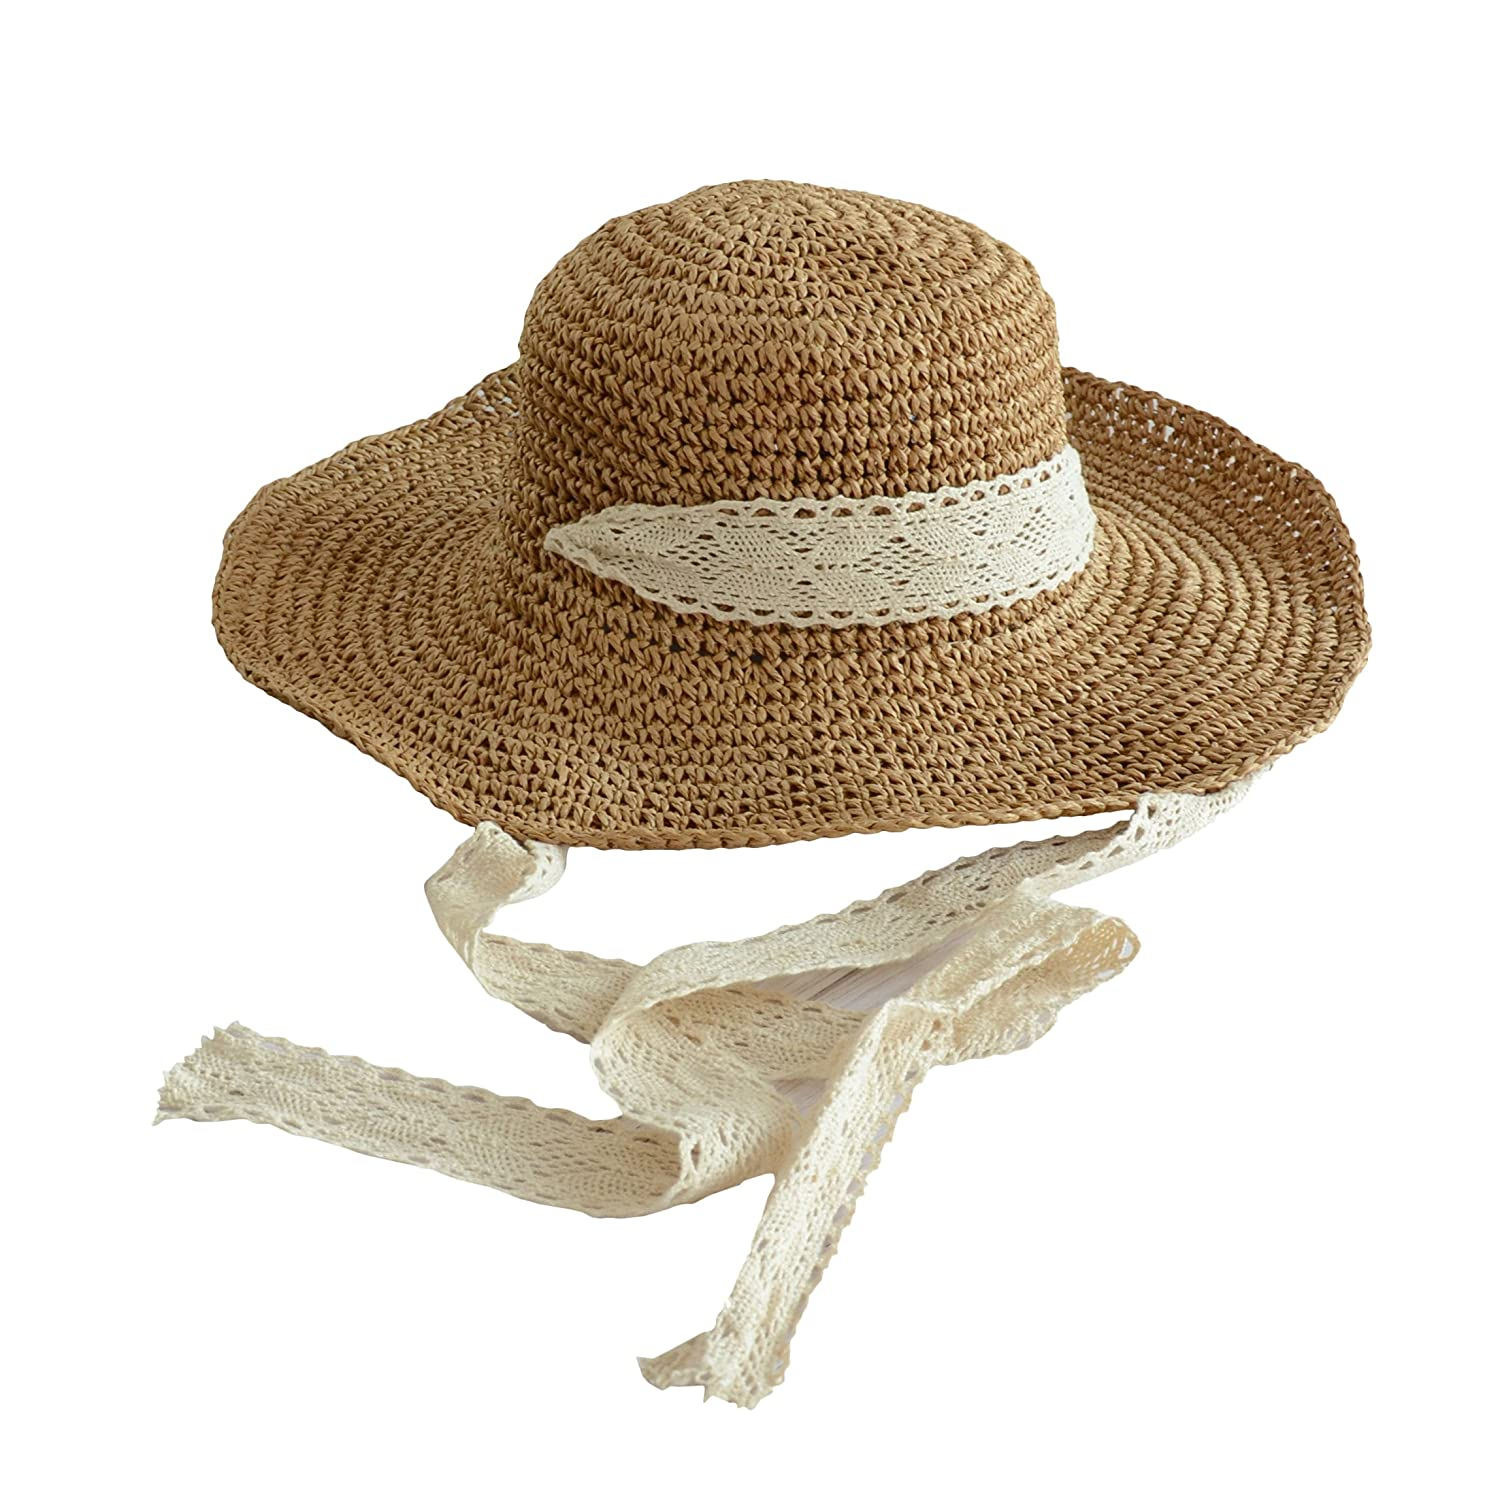 Hippie Hats,  70s Hats Urban CoCo Womens Wide Brim Caps Foldable Summer Beach Sun Straw Hats $11.68 AT vintagedancer.com